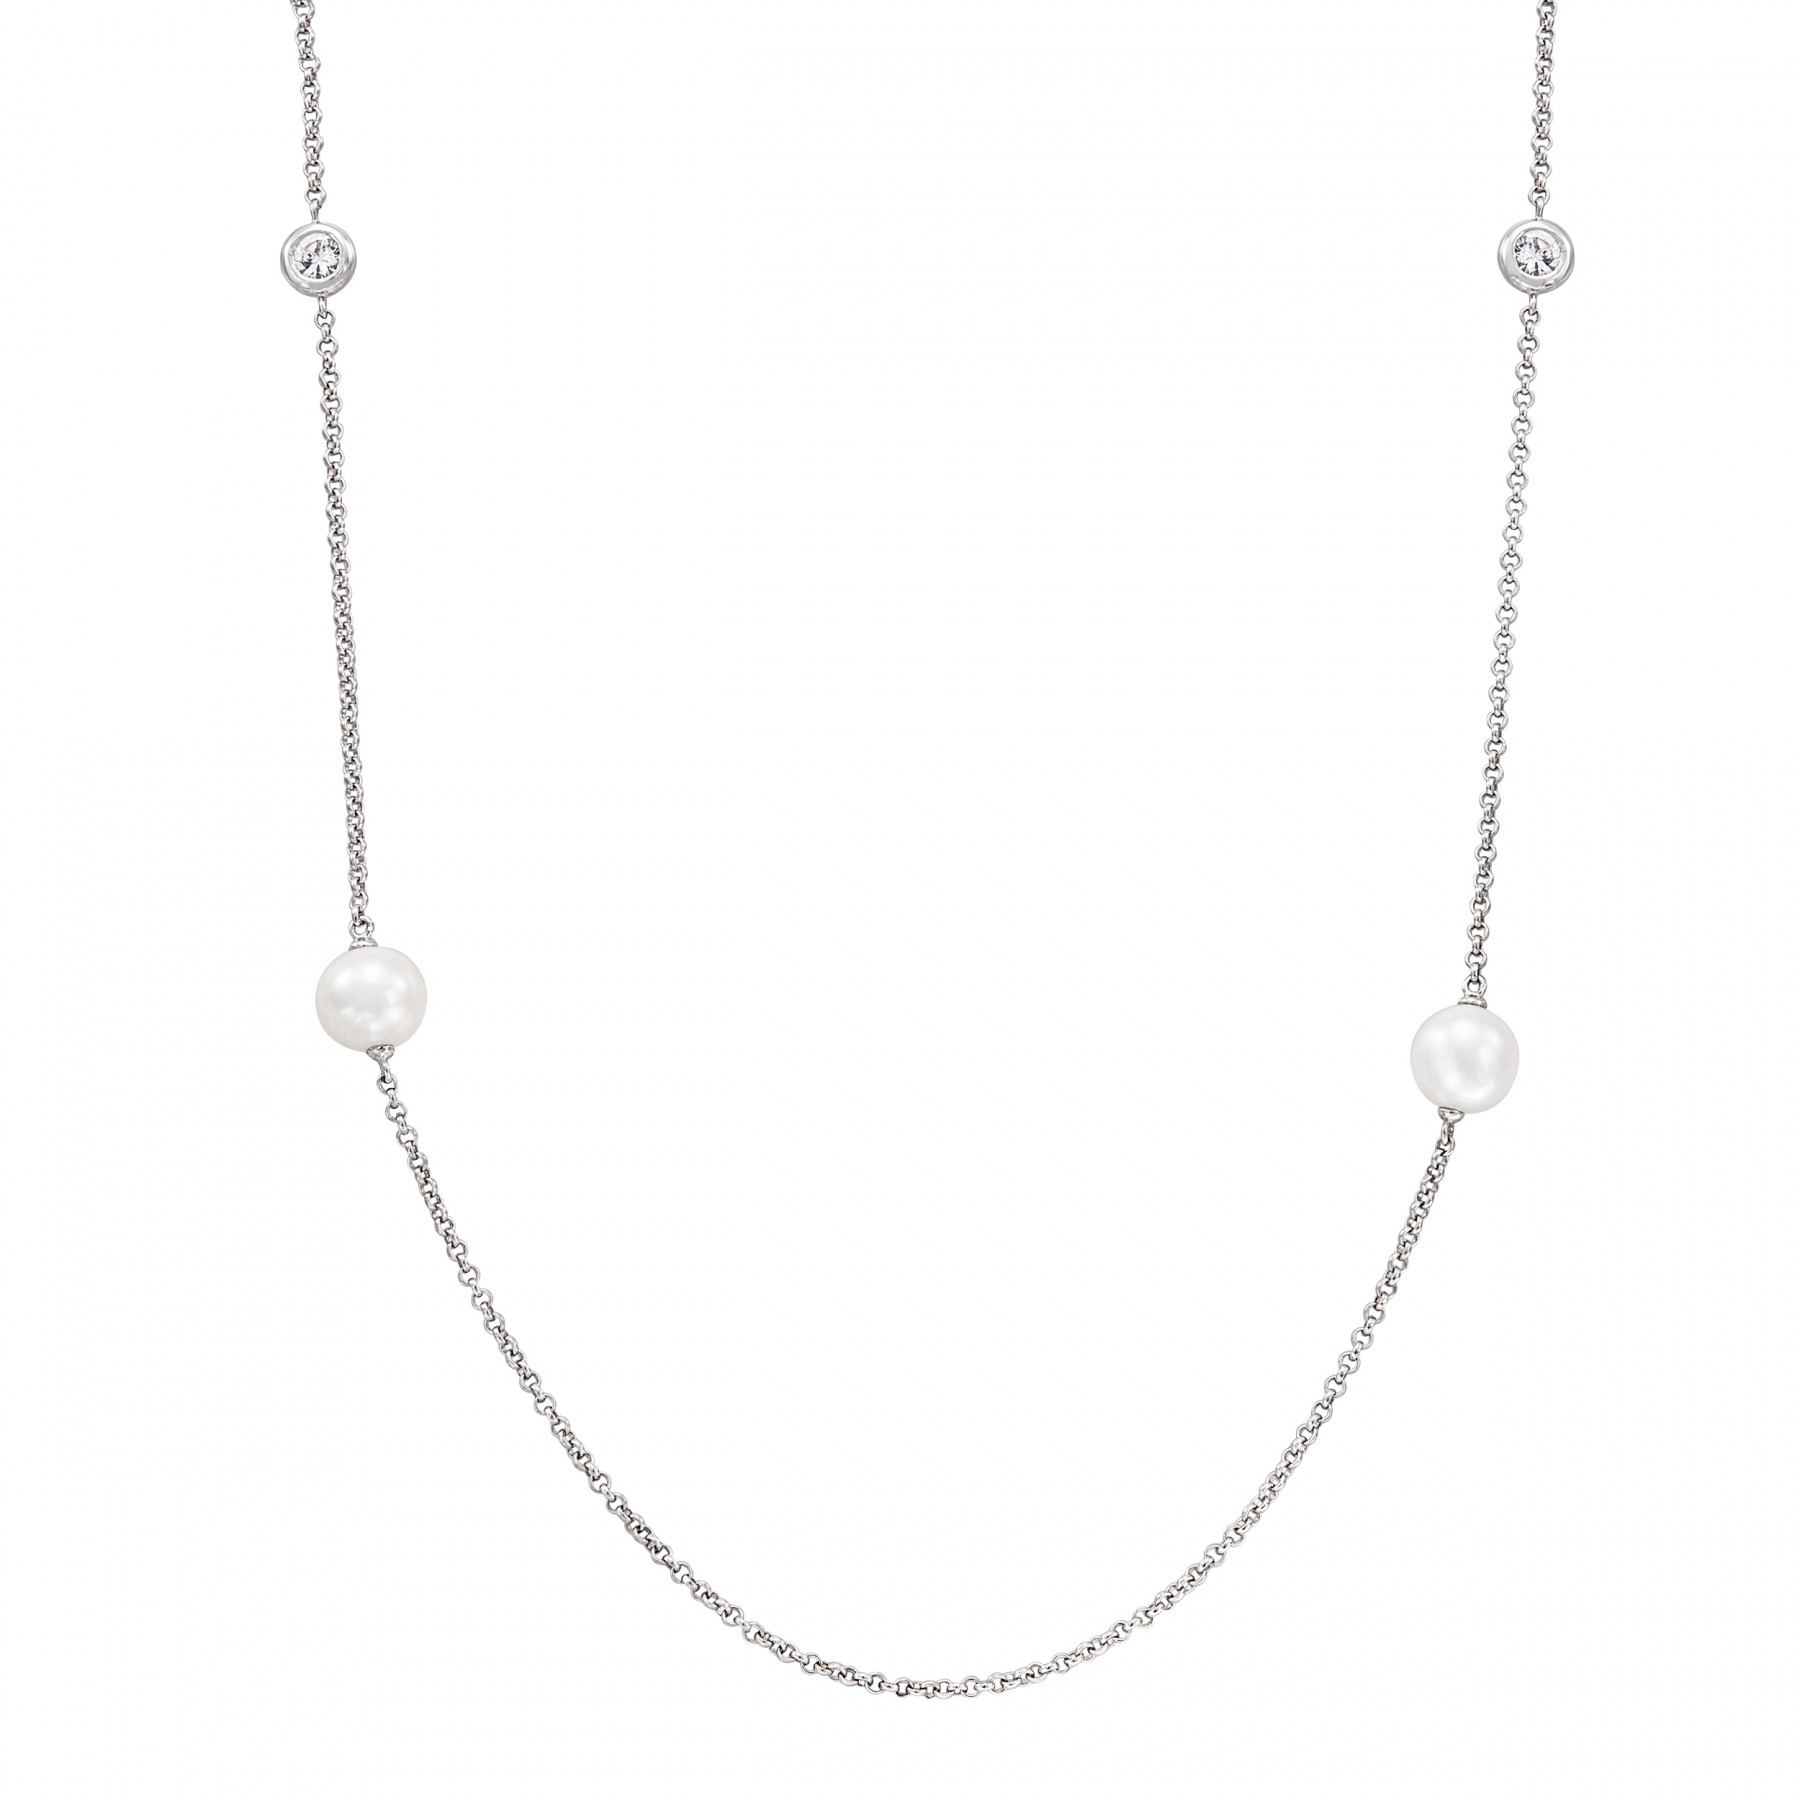 Honora Shimmer Pearl and Sapphire Necklace in Sterling Silver